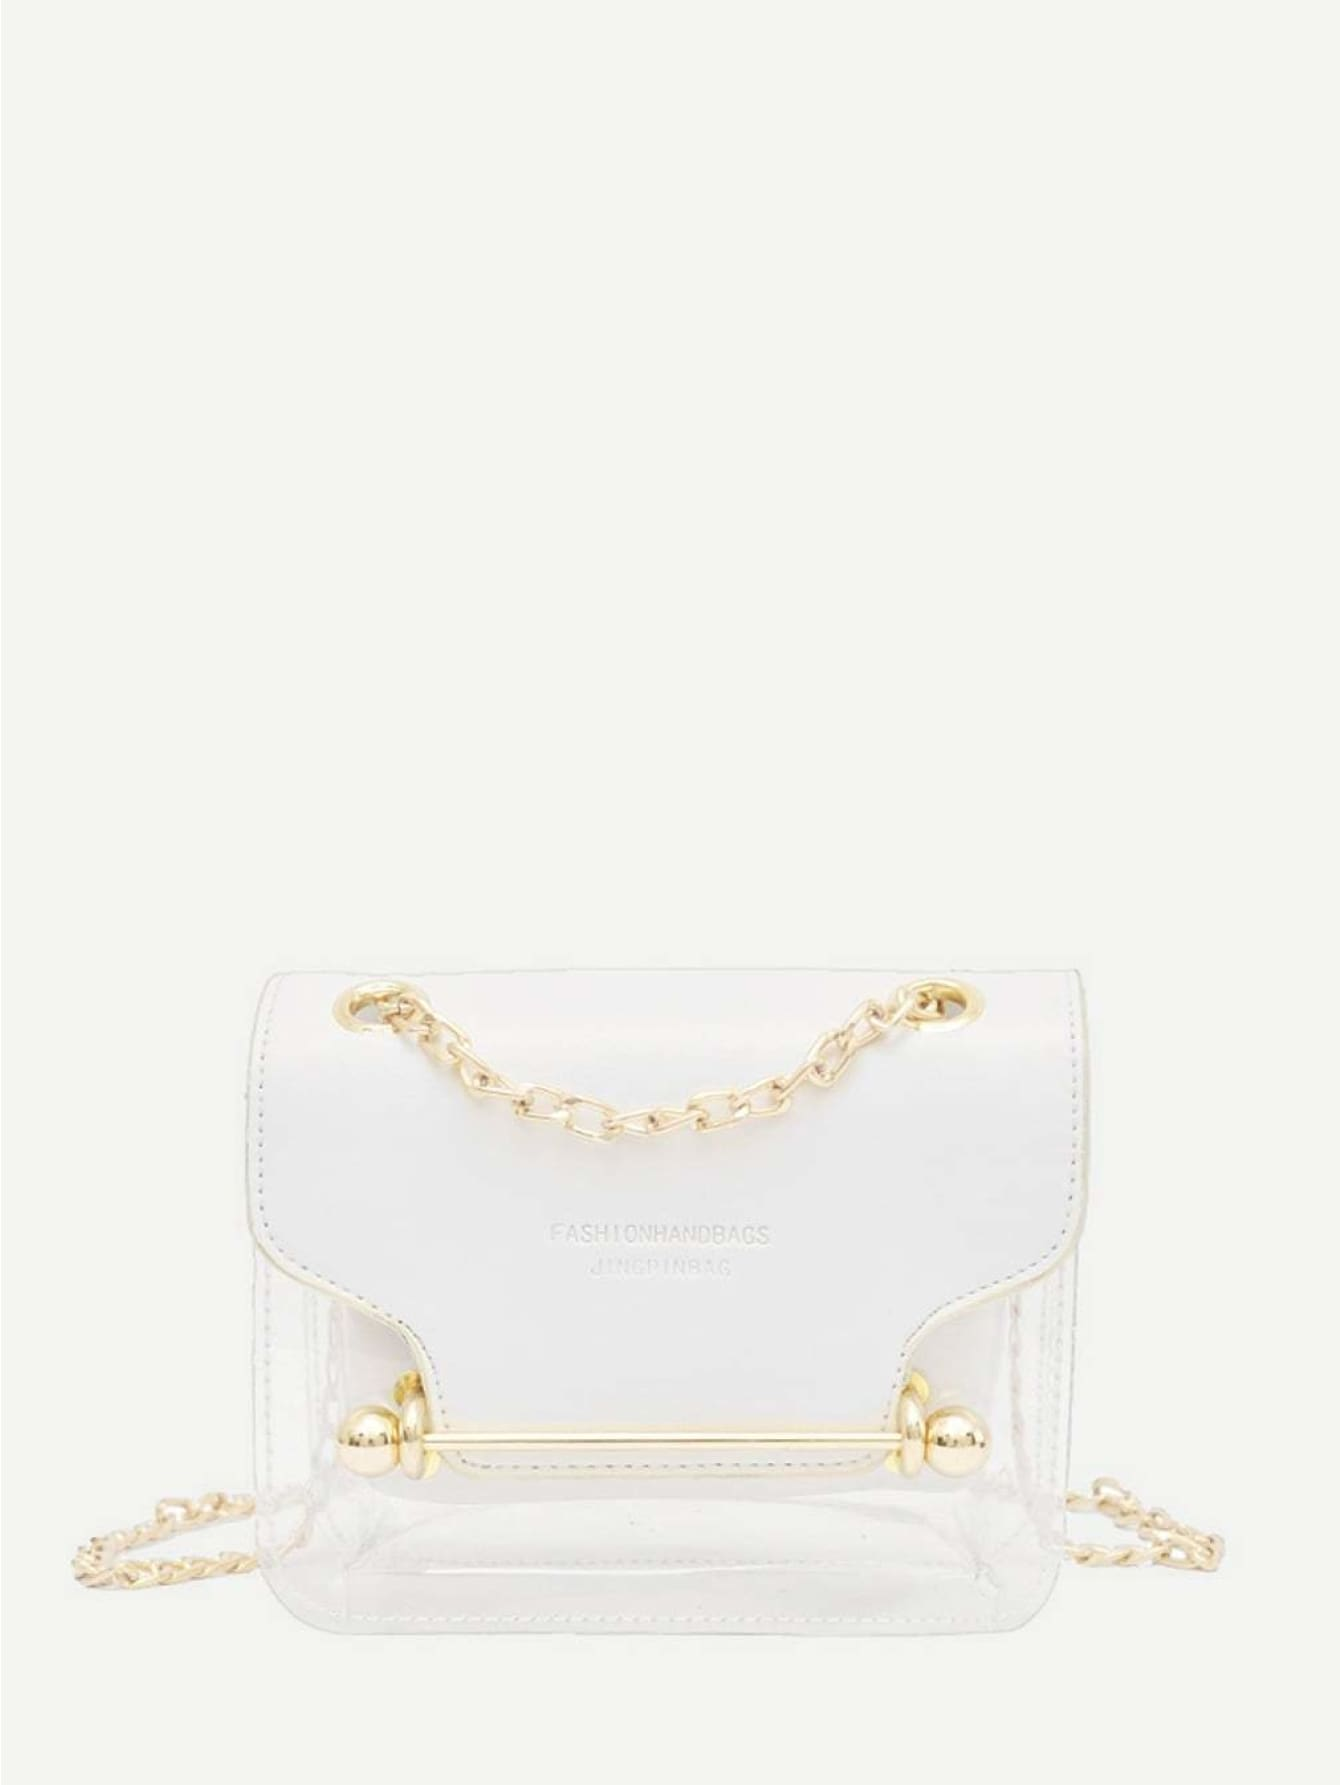 PU Chain Bag With Inner Pouch - Womens Bag